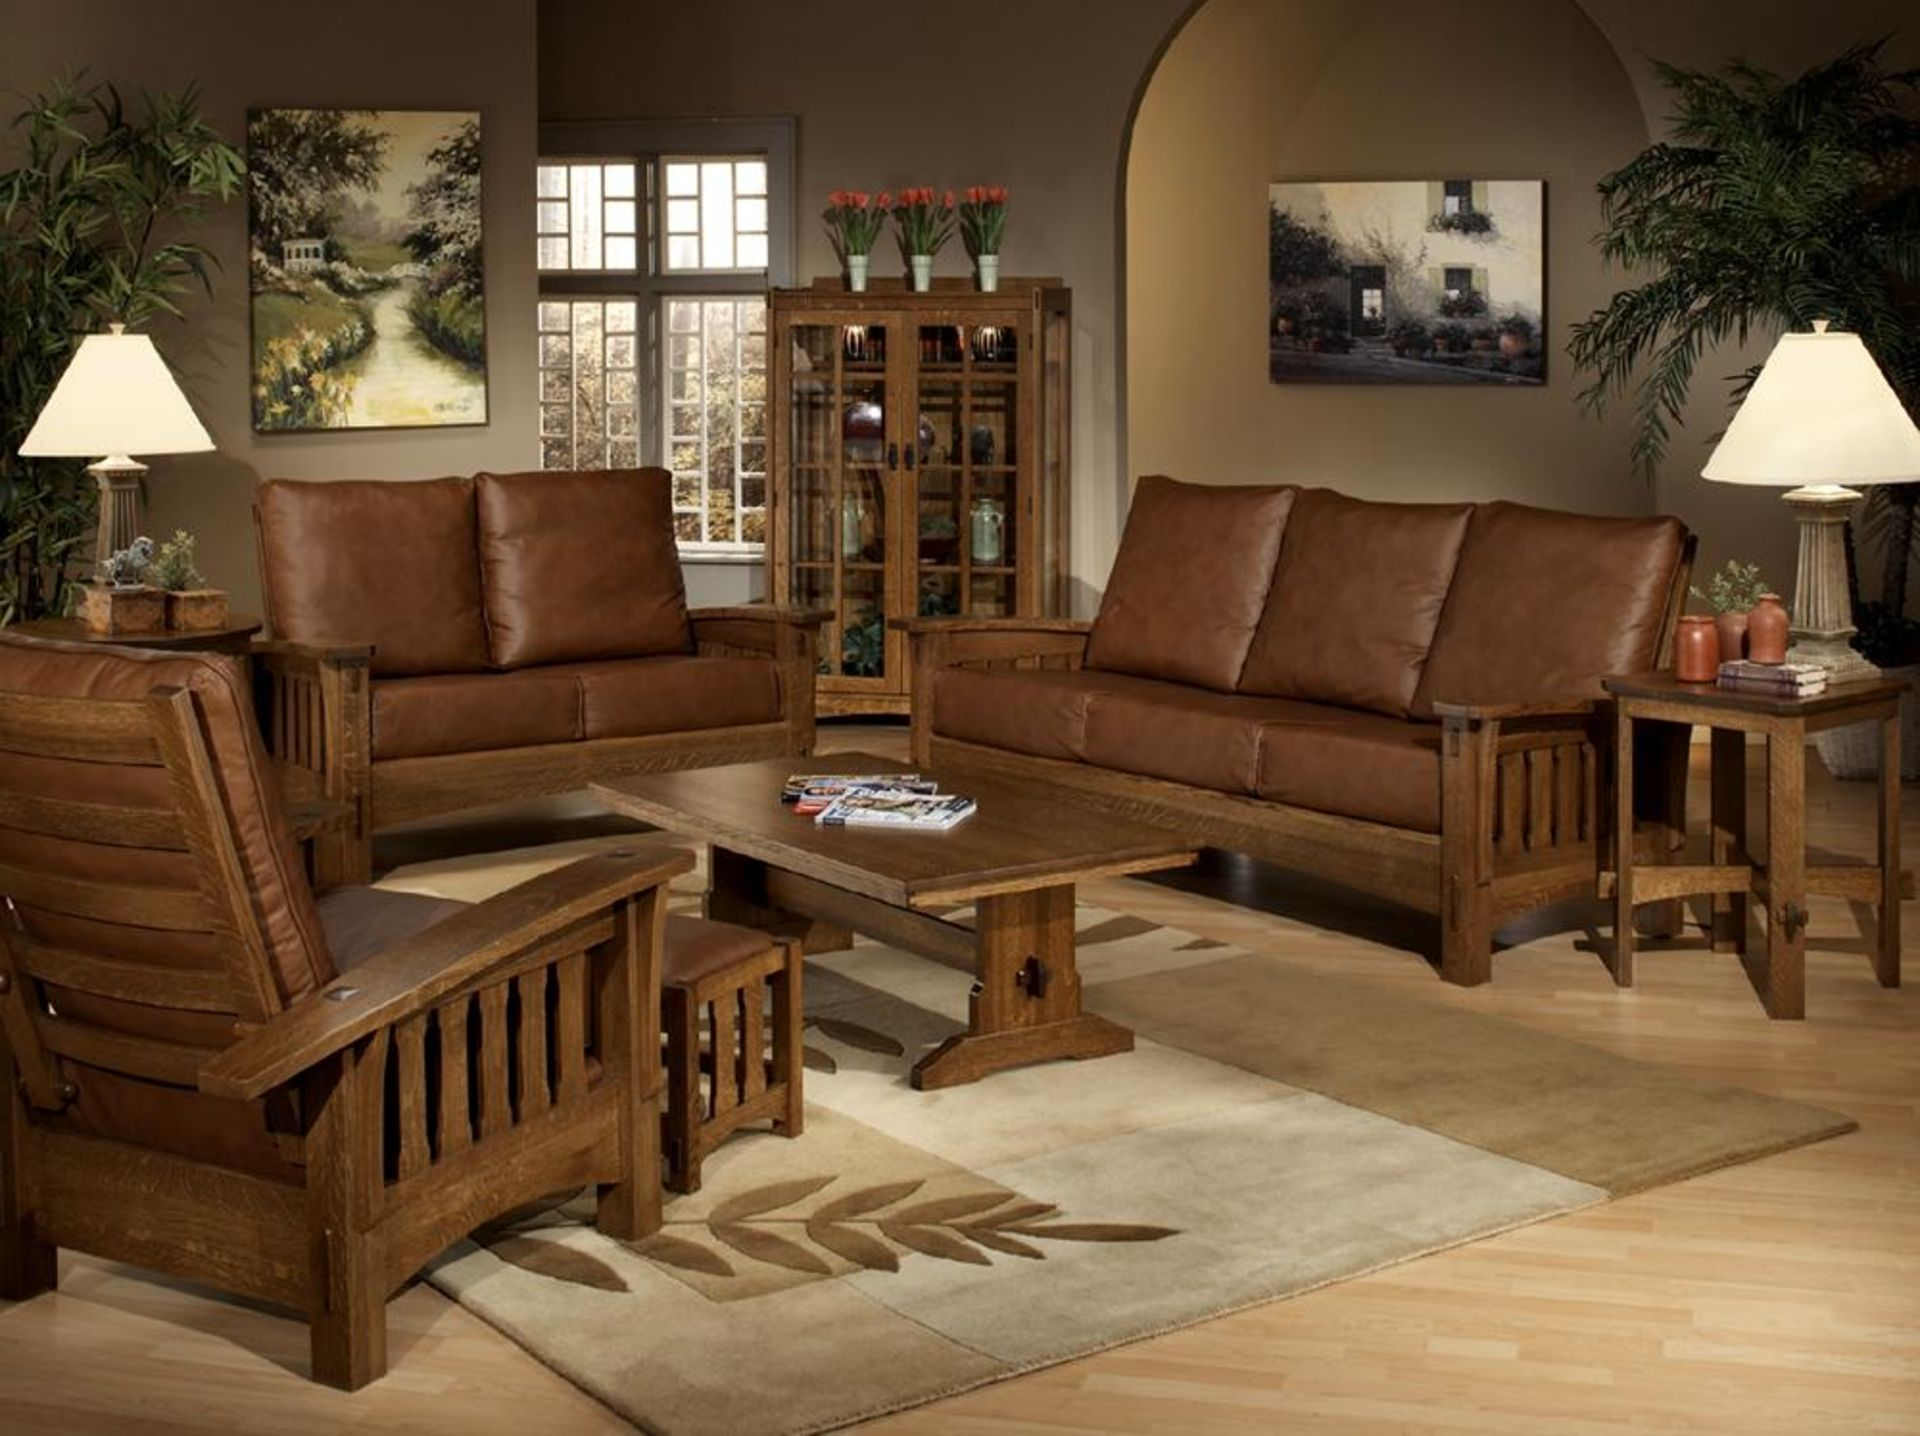 Furniture Dark Brown Leather Sofa Set With Wooden Arms And